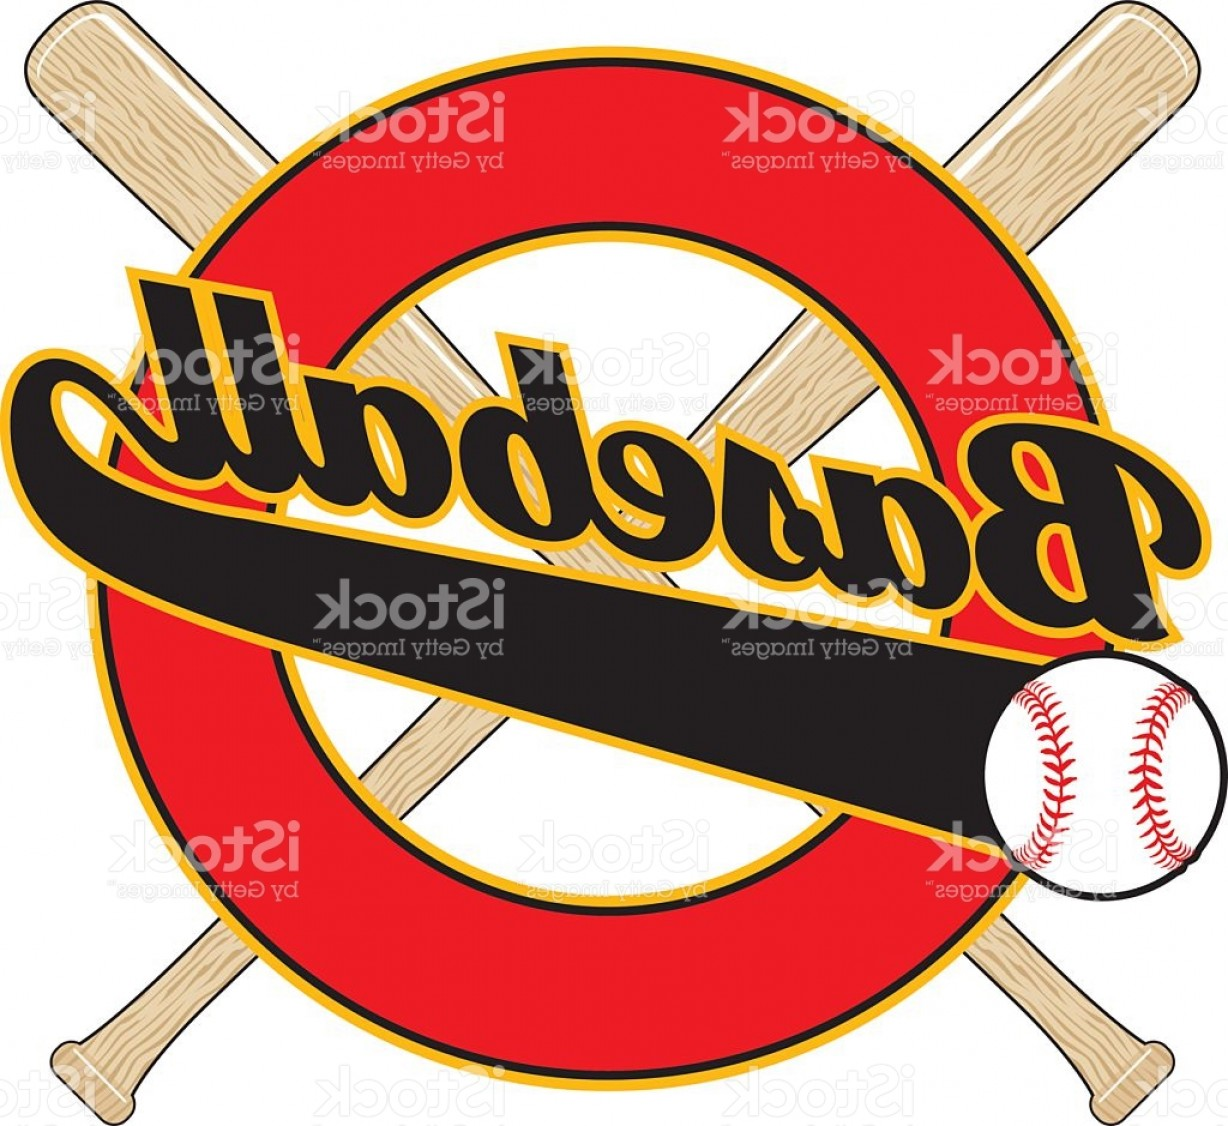 Baseball Tails Vector Clip Arts: Baseball With Tail Banner Gm